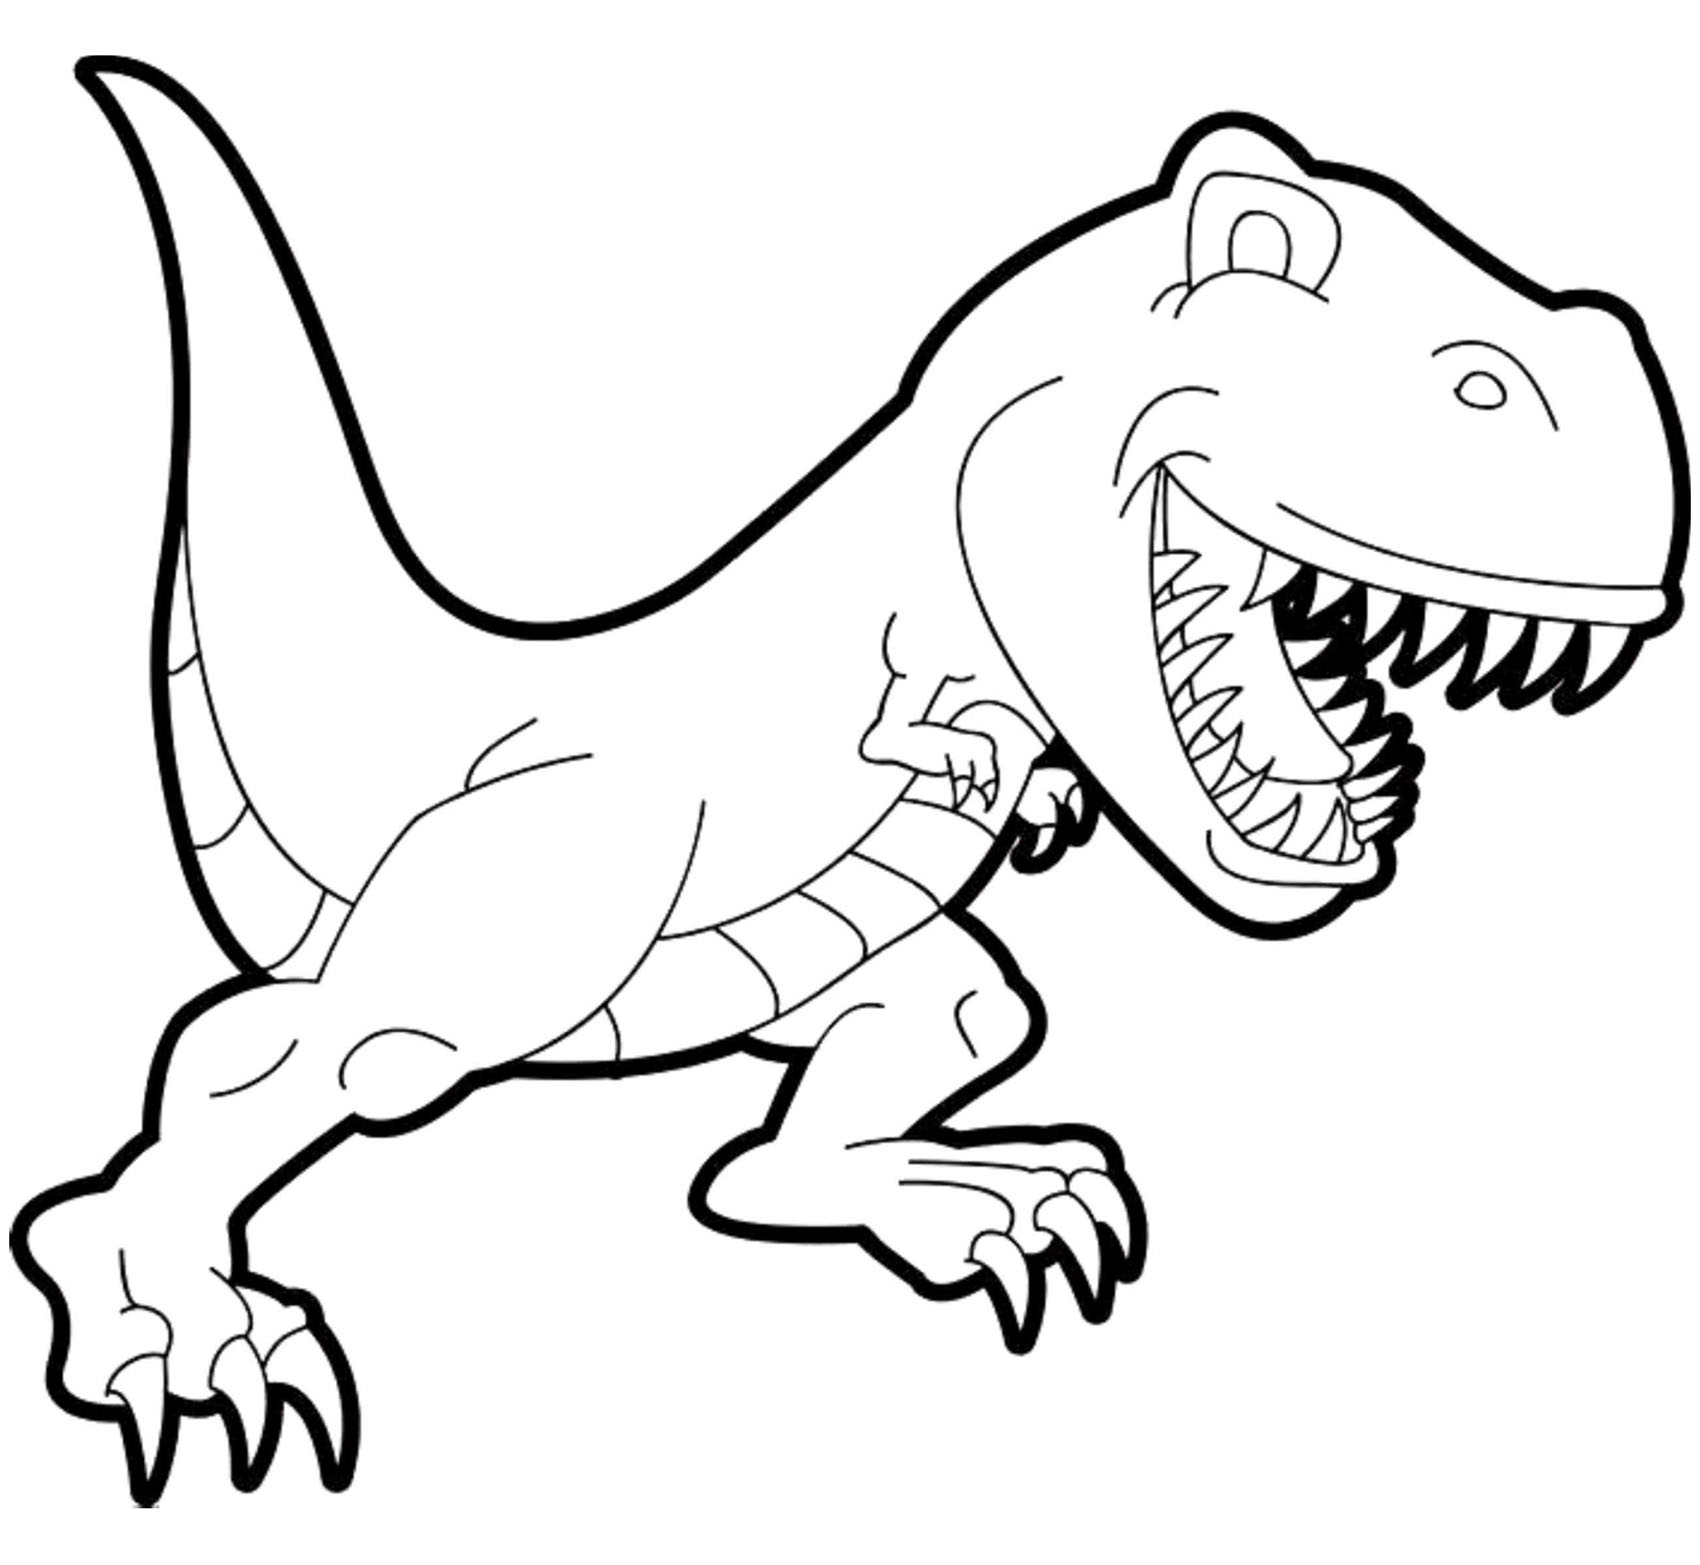 dinosaur coloring pages printable free dinosaurs free to color for kids tyrannosaur rex cartoon free coloring printable dinosaur pages